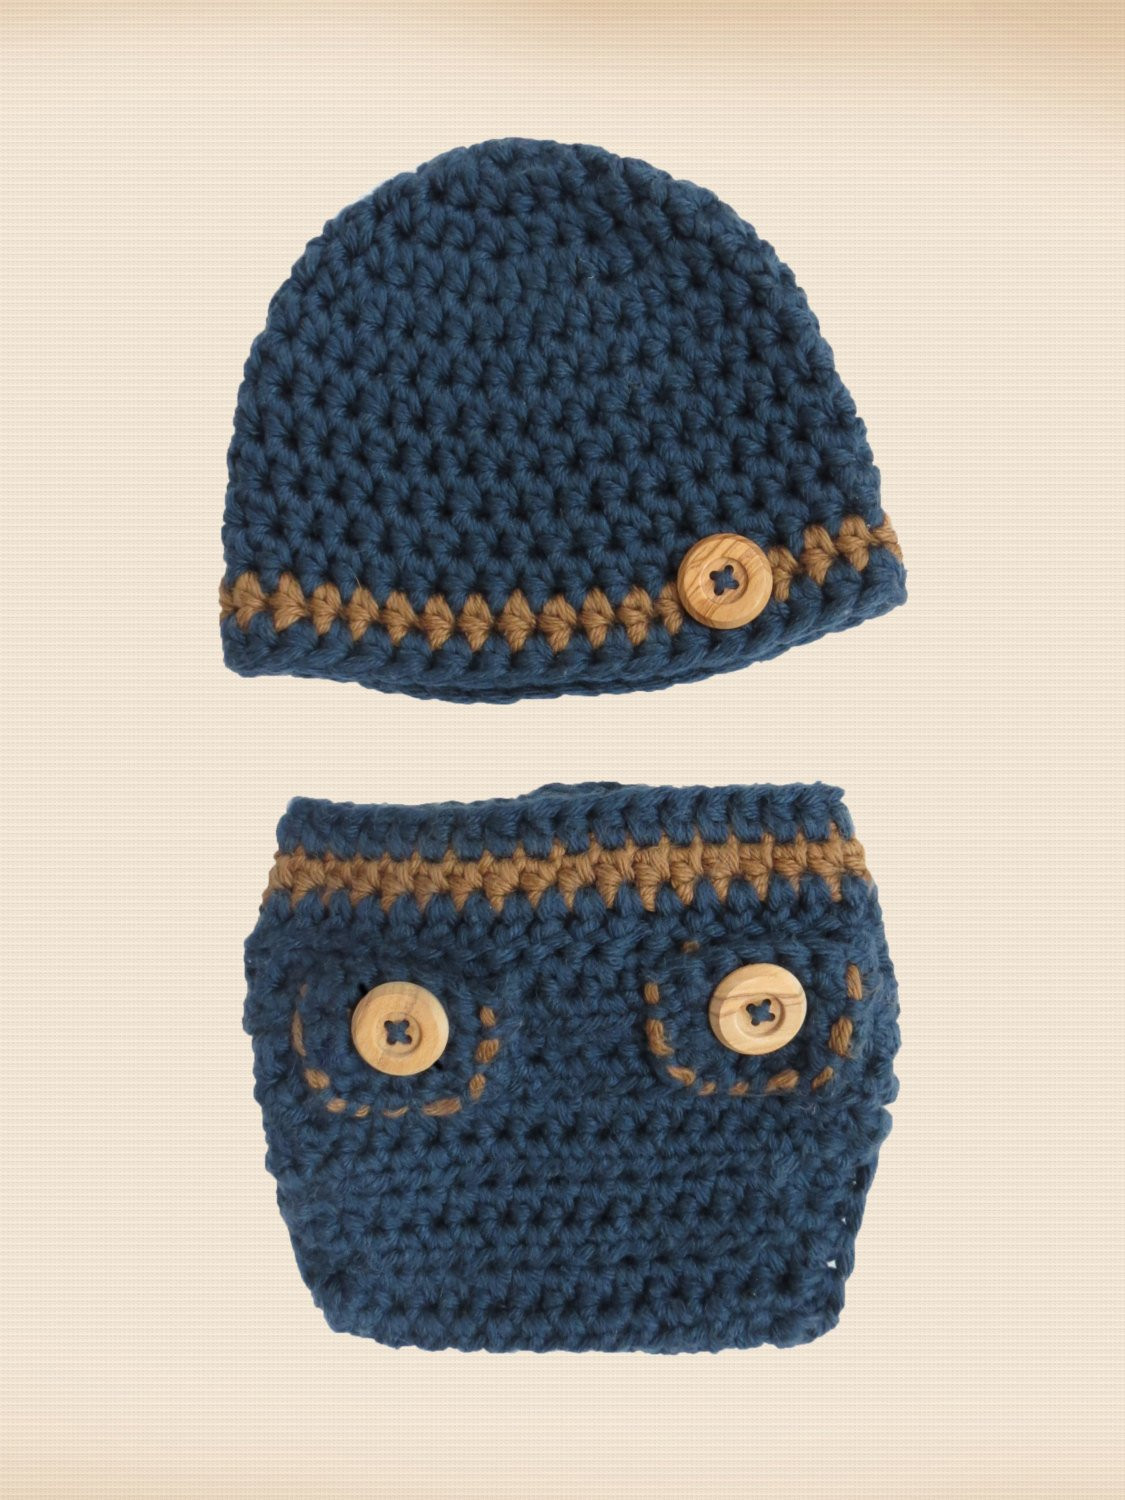 Crochet Baby Diaper Cover and Hat Luxury Crochet Diaper Cover Pattern Crochet Hat by Of Perfect 50 Photos Crochet Baby Diaper Cover and Hat